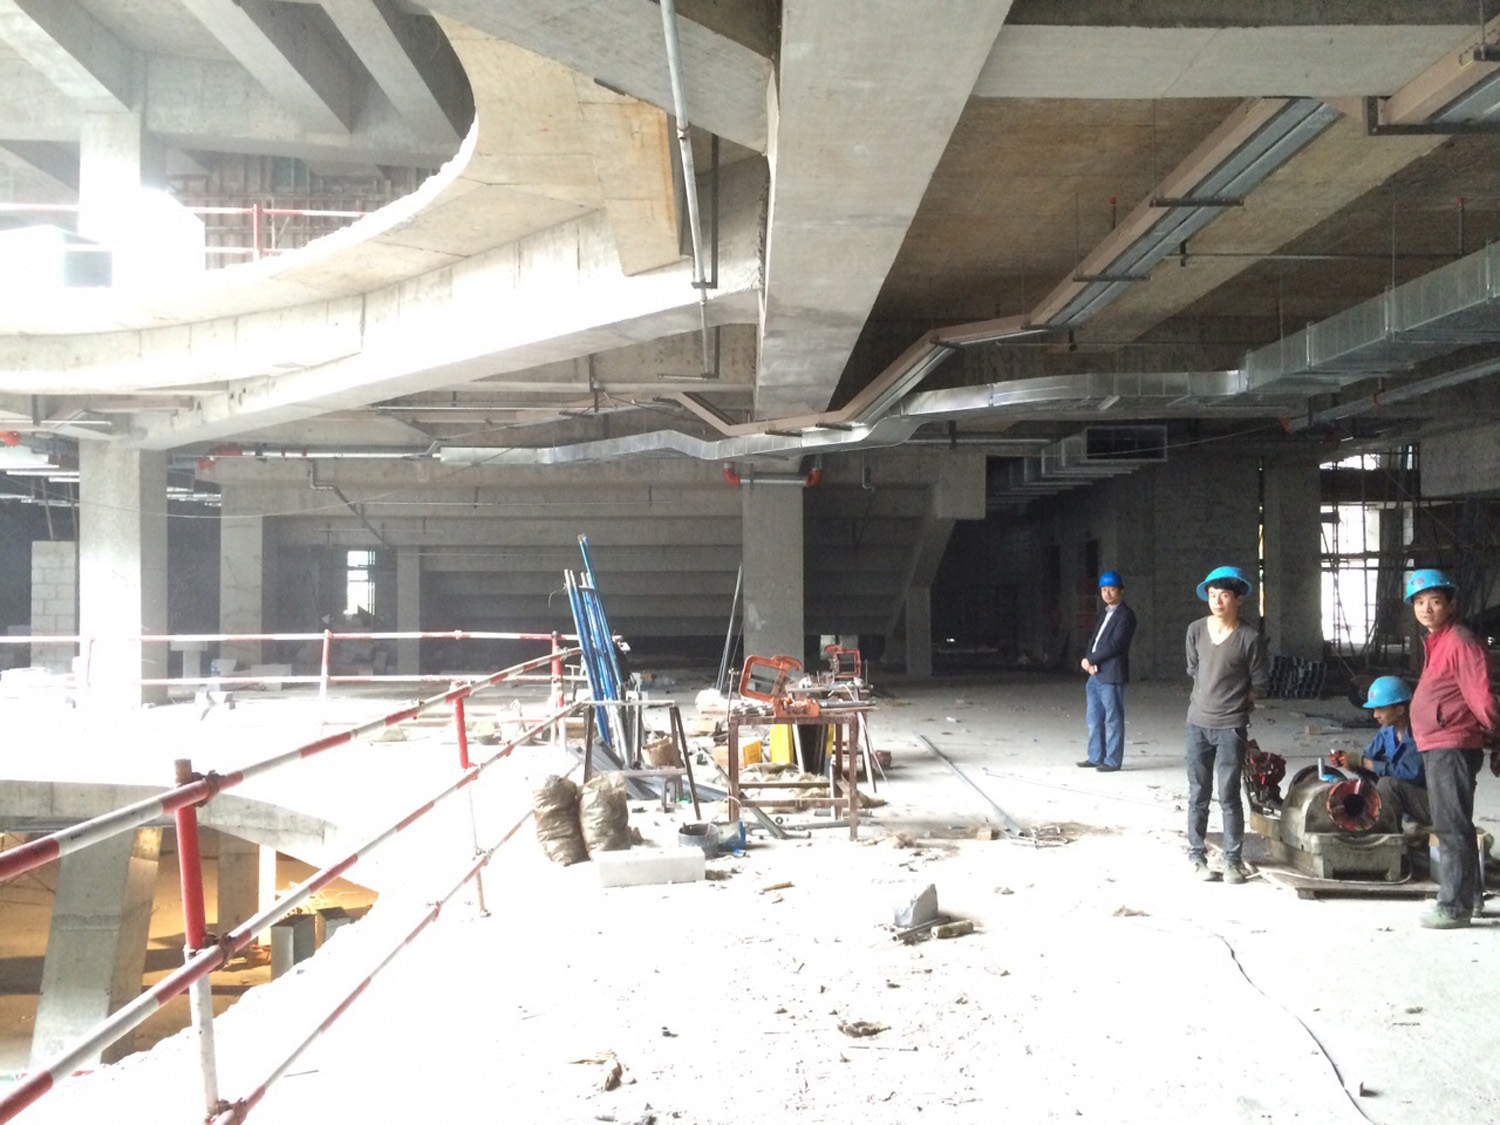 Hangzhou Kerry Centre Premiere Cinemas under construction